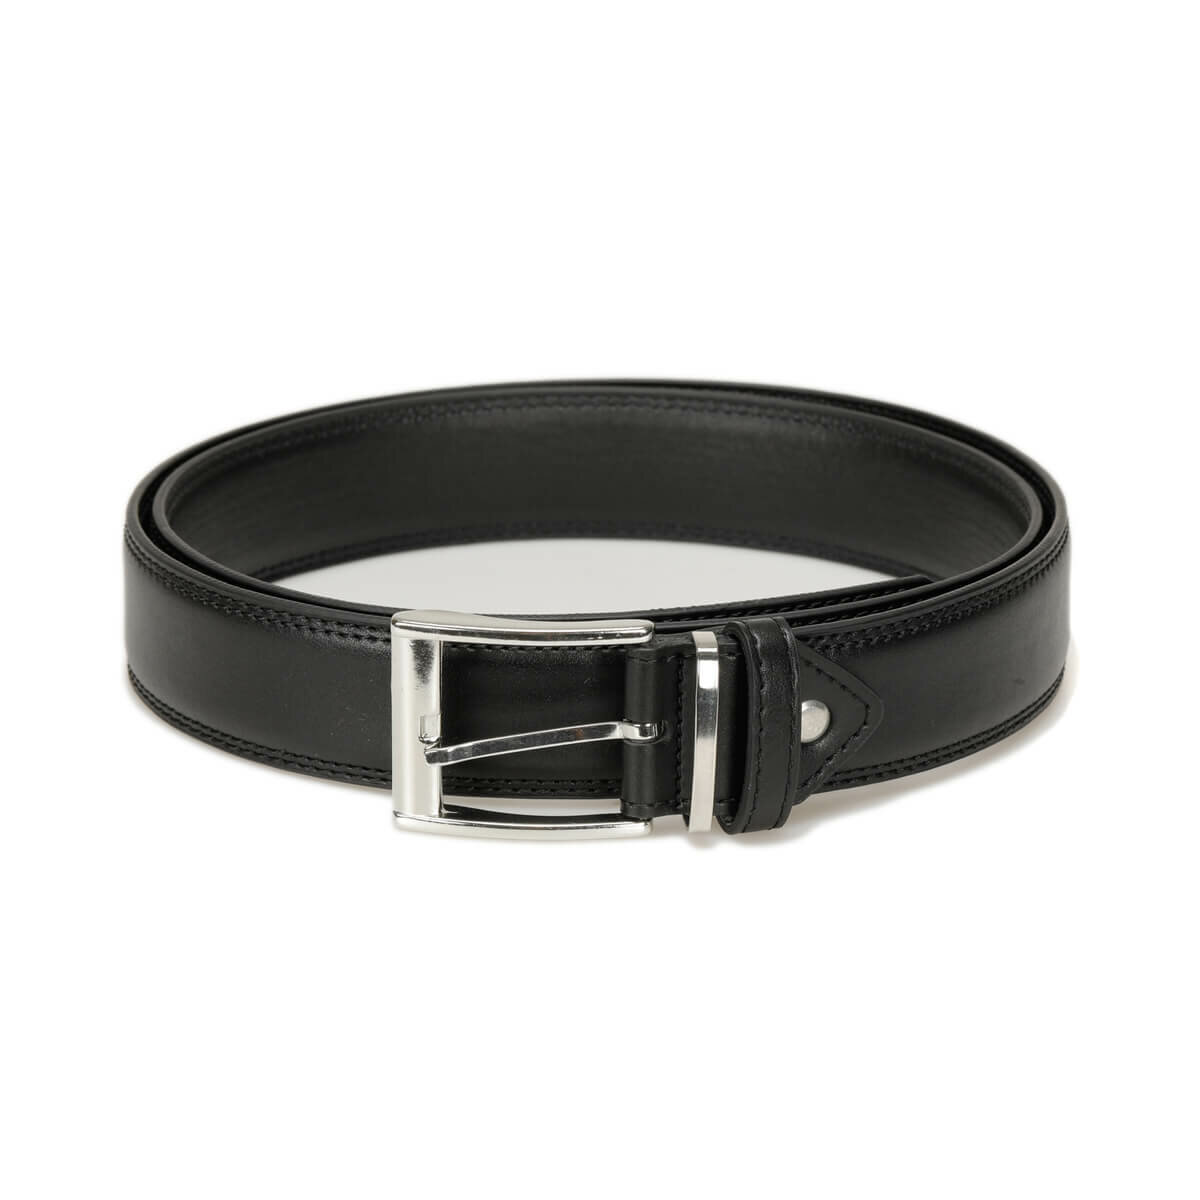 FLO MKLT3402 Black Male Belt Garamond